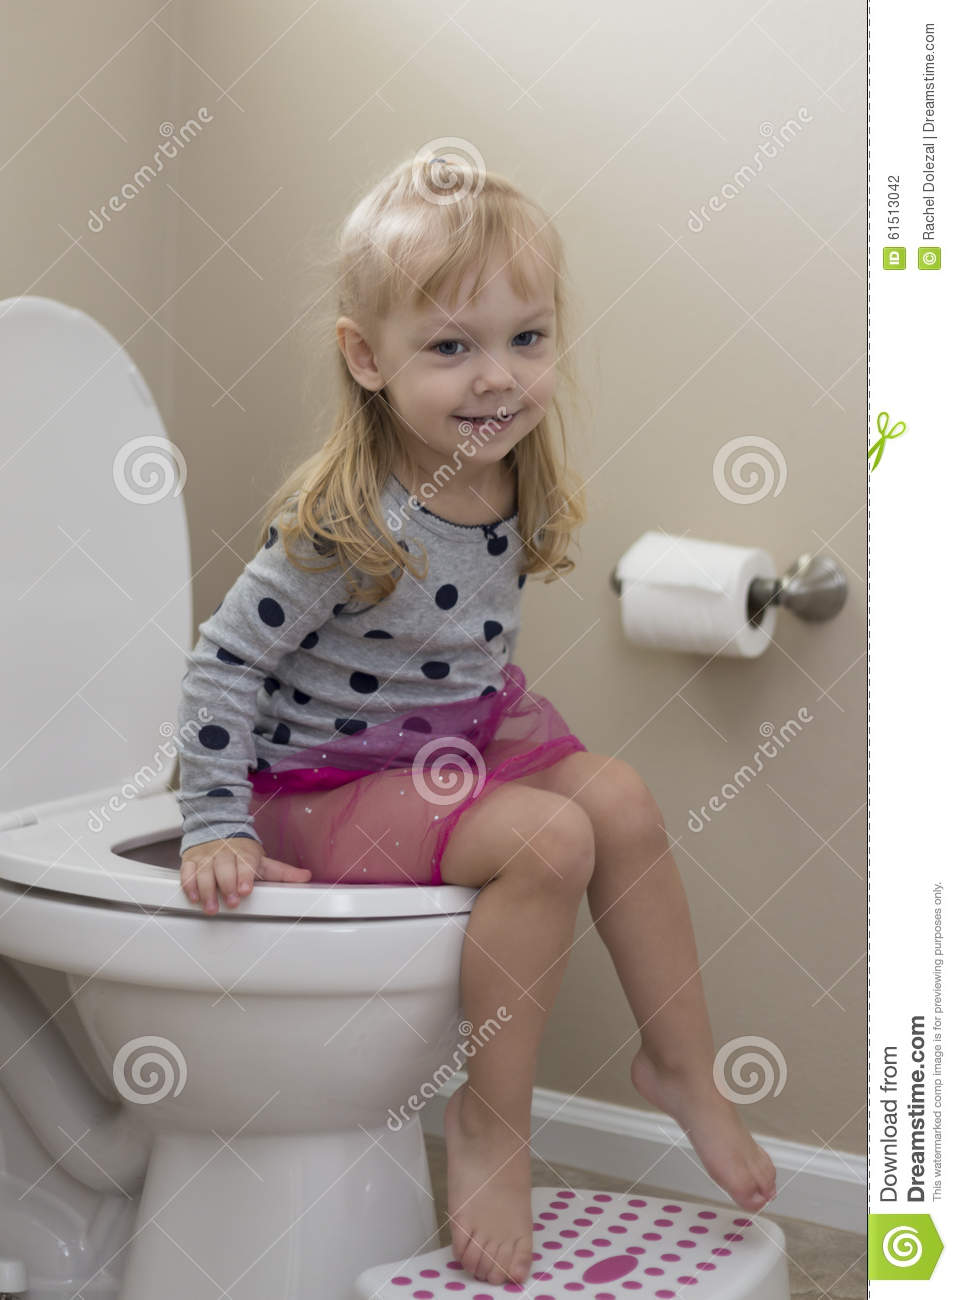 Little girl nude toilet, hottest naked women of canada